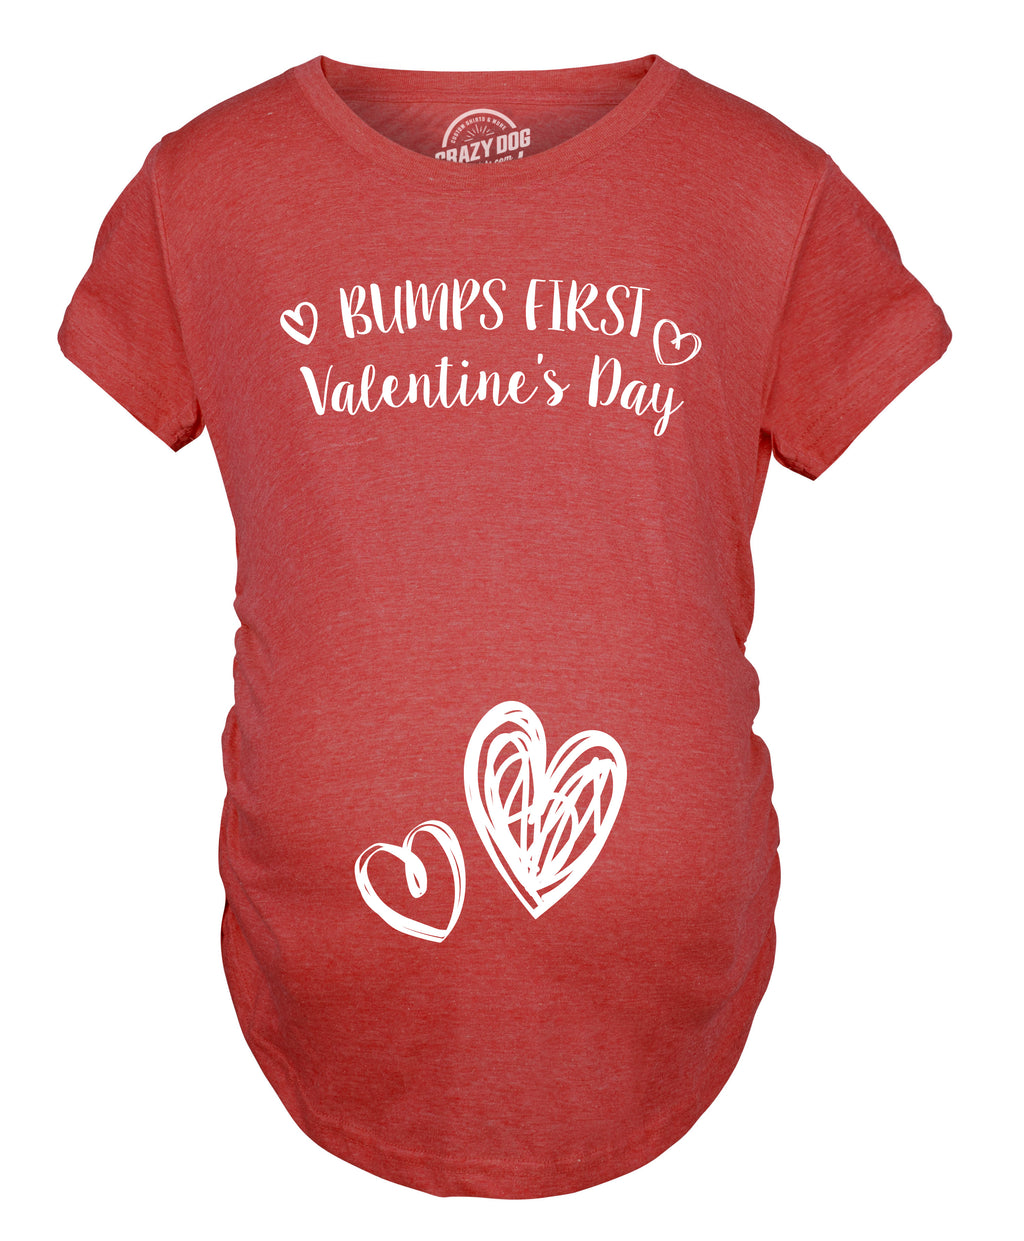 Bumps First Valentine's Day Maternity Shirt Cute Adorable Baby Pregnancy Tee